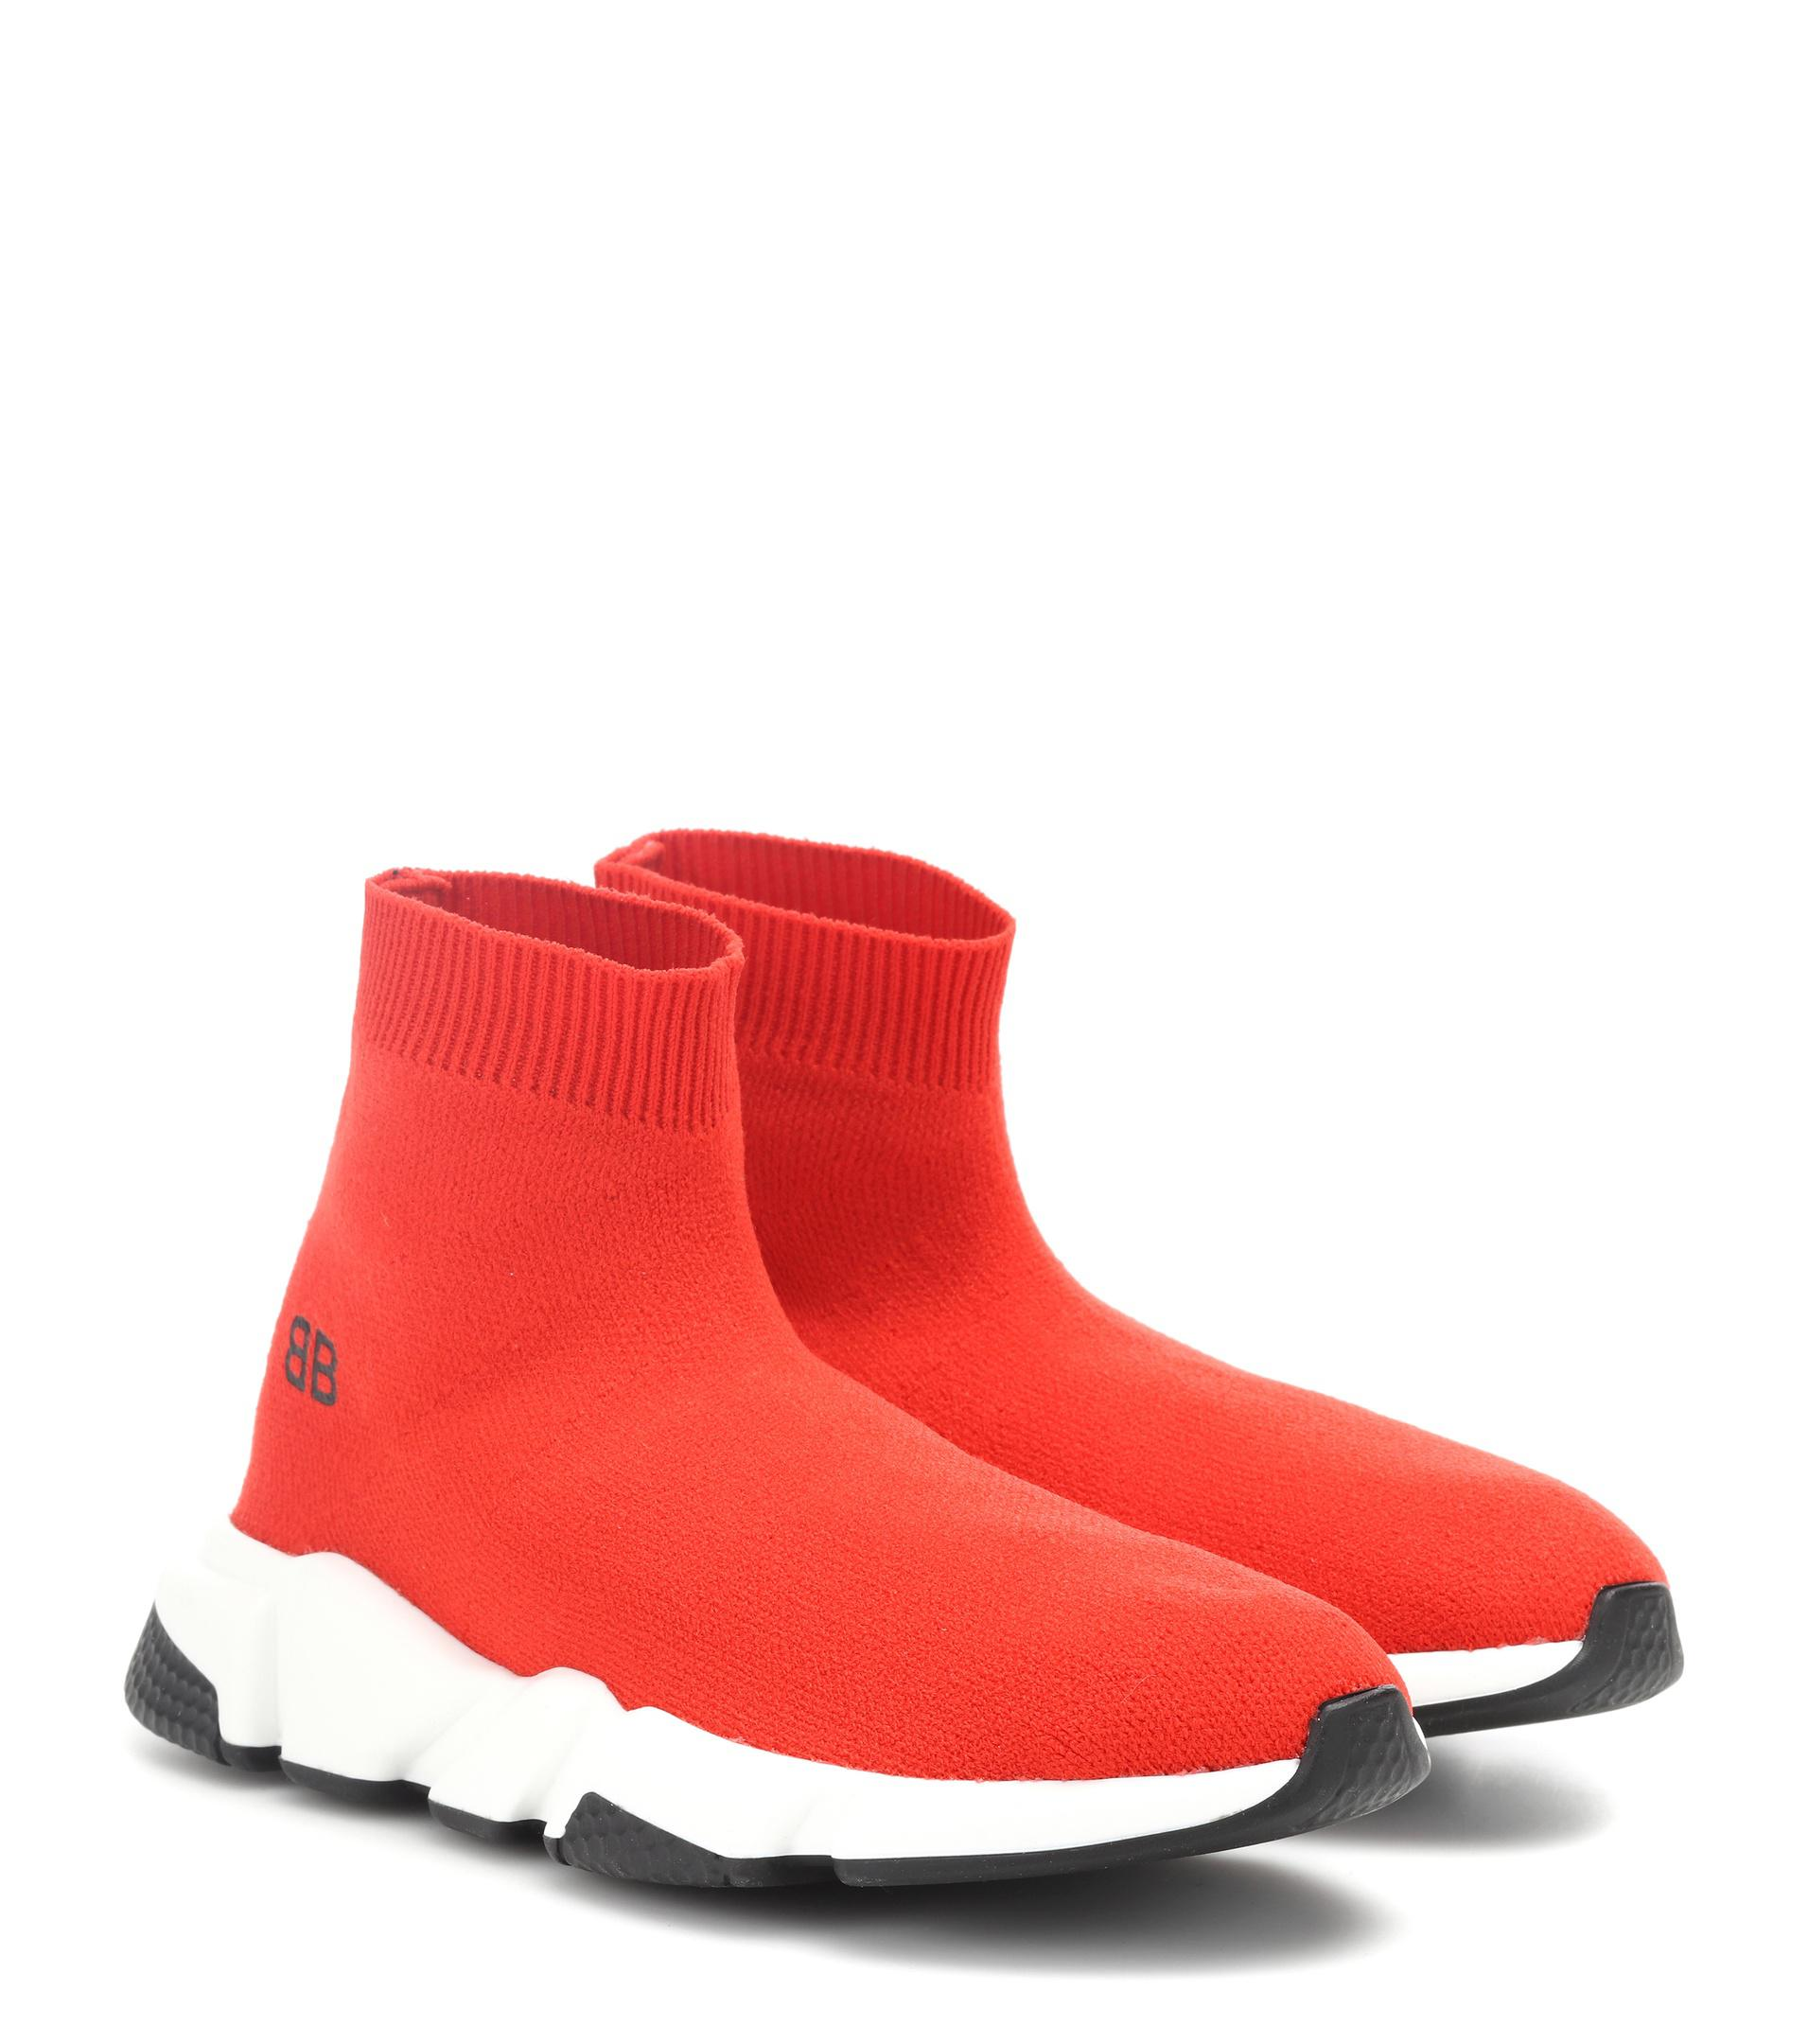 Balenciaga Speed Trainer Sneakers in